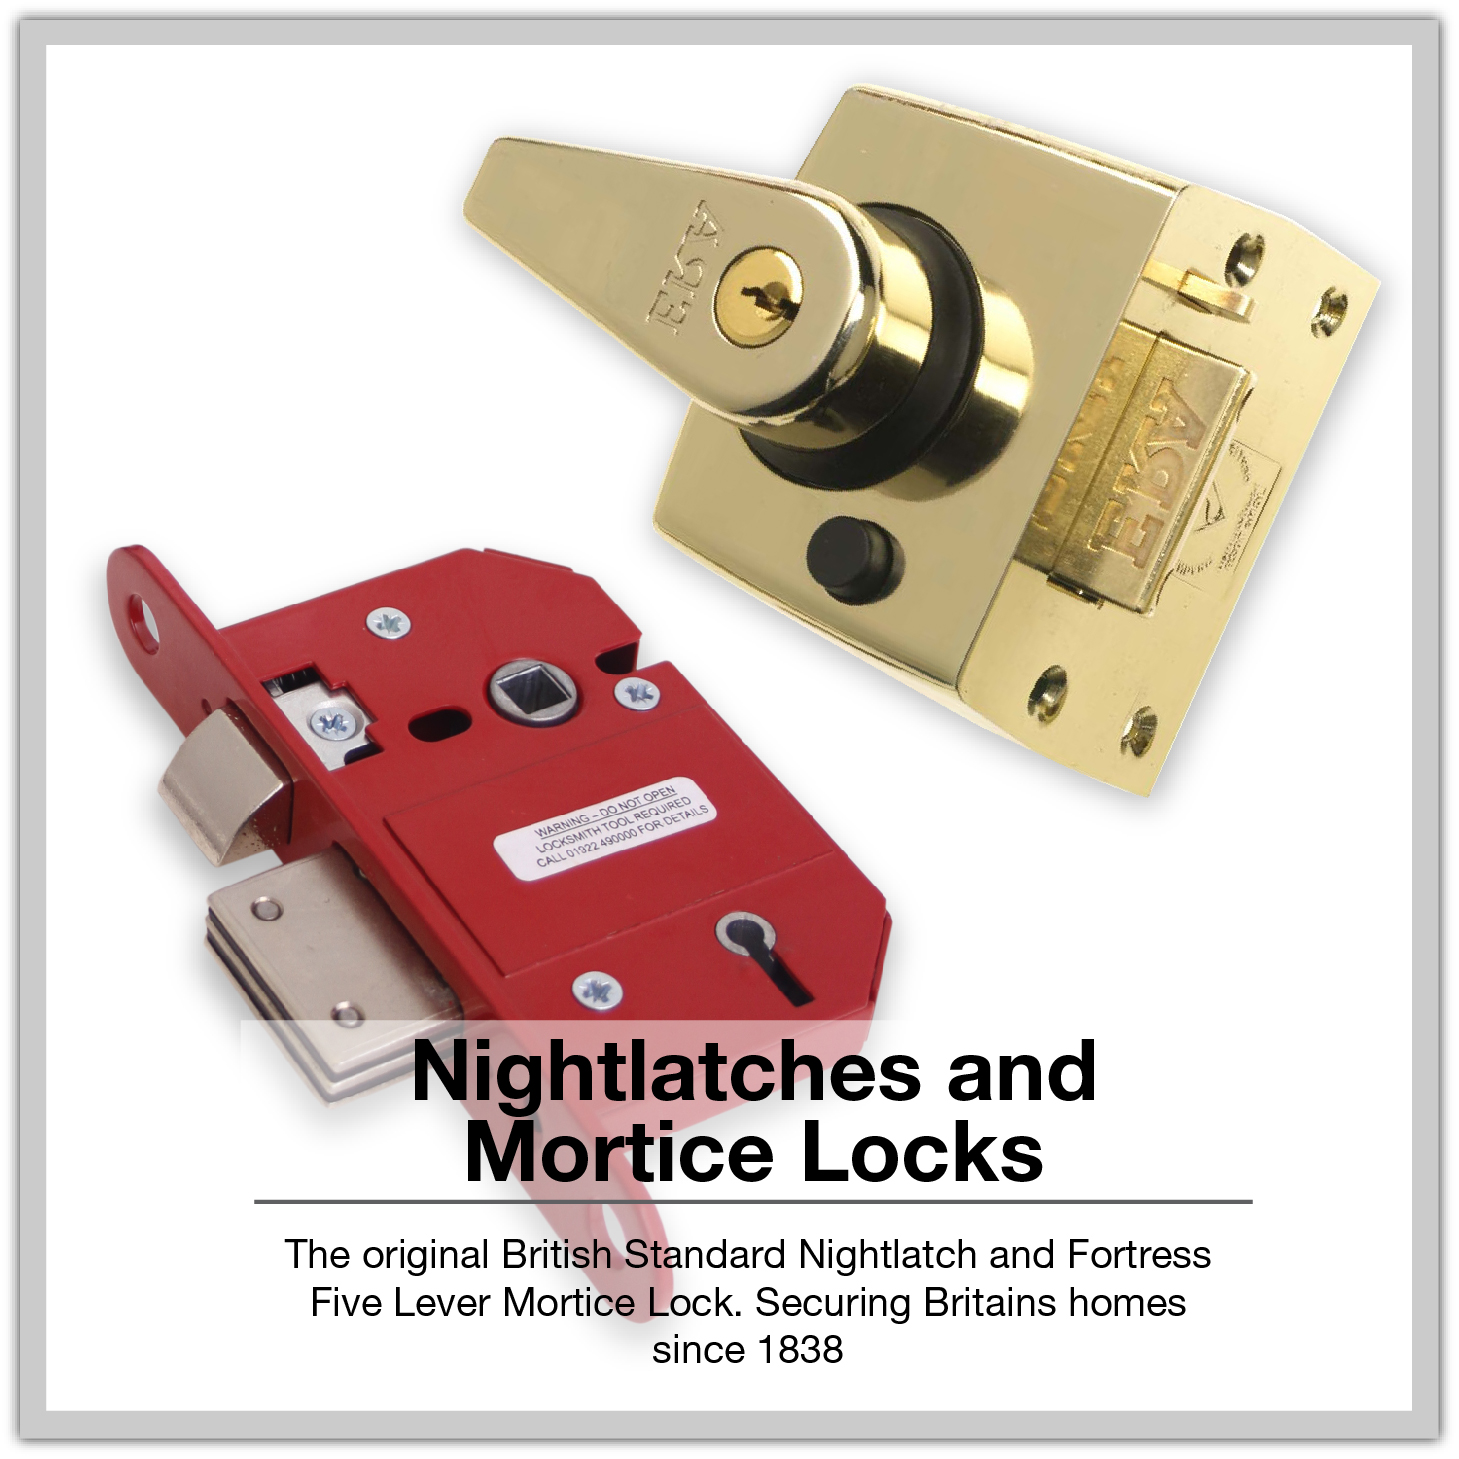 ERA Nightlatches and Mortice Locks